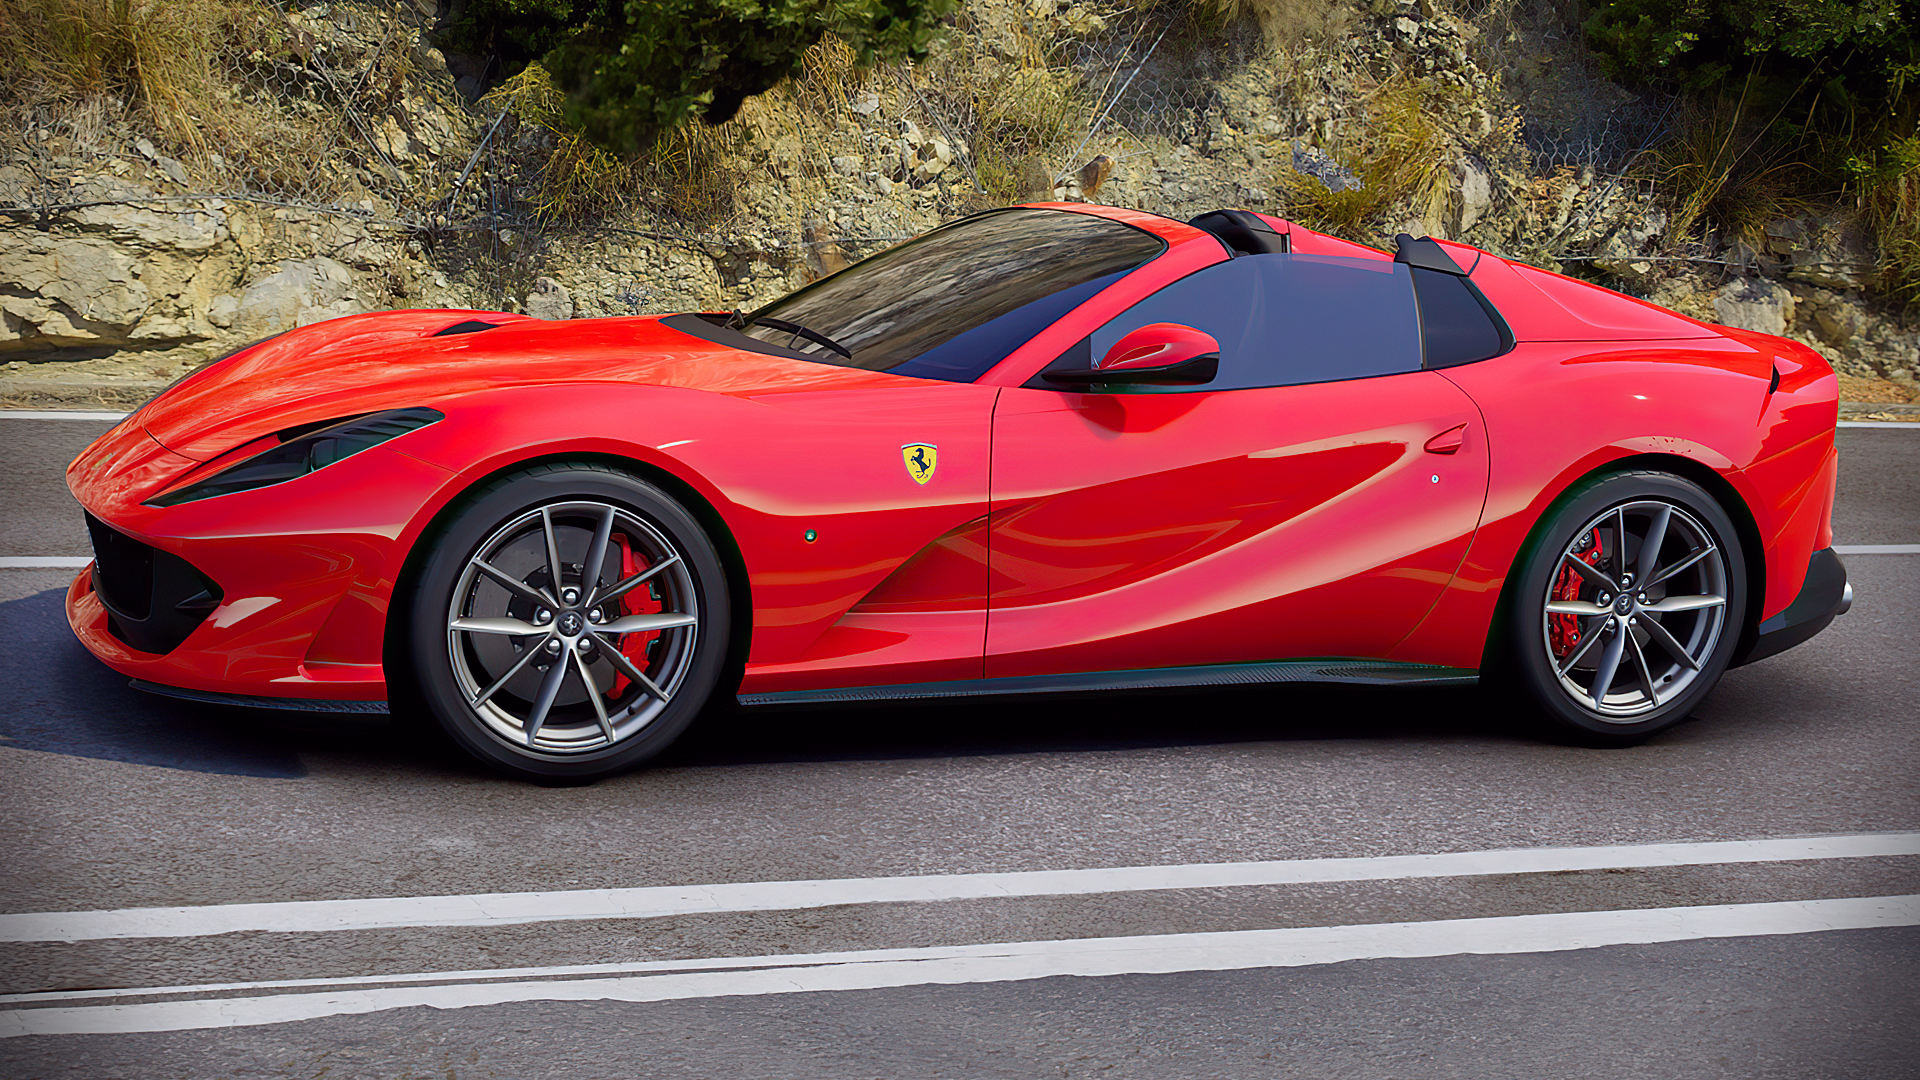 2020 Ferrari 812 GTS V12 Spider Red